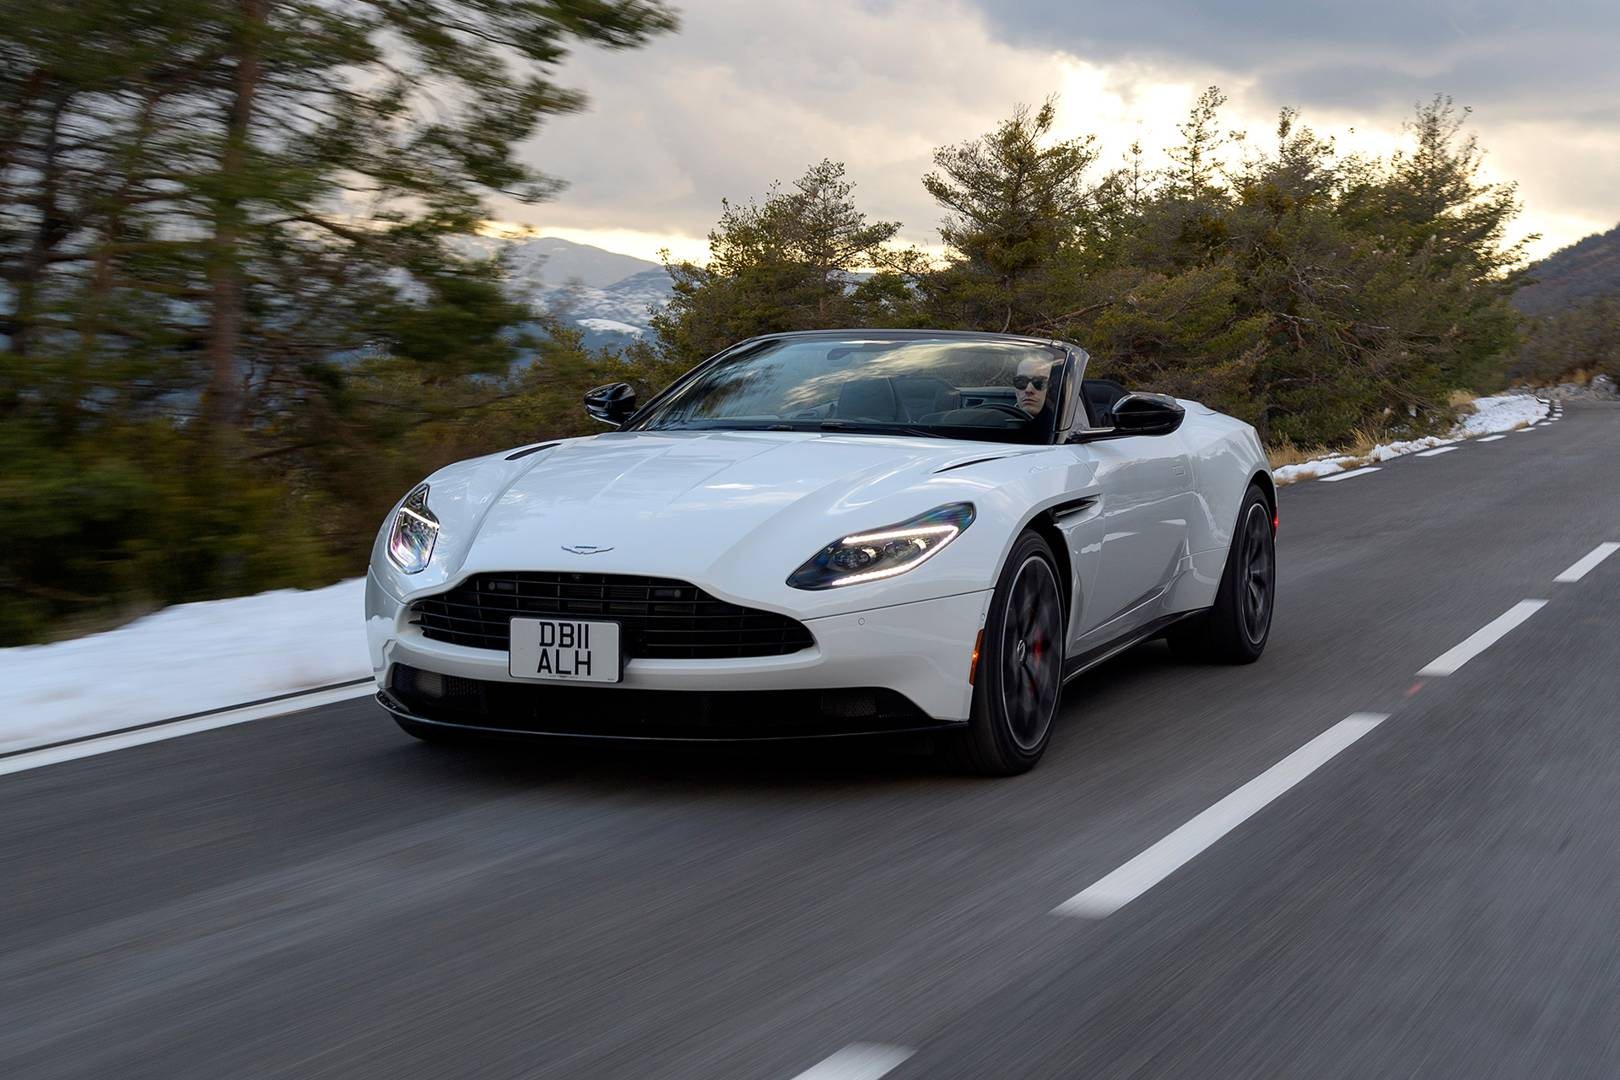 Aston Martin Volante Review This Years Most Beautiful Car British GQ - Aston martin volante